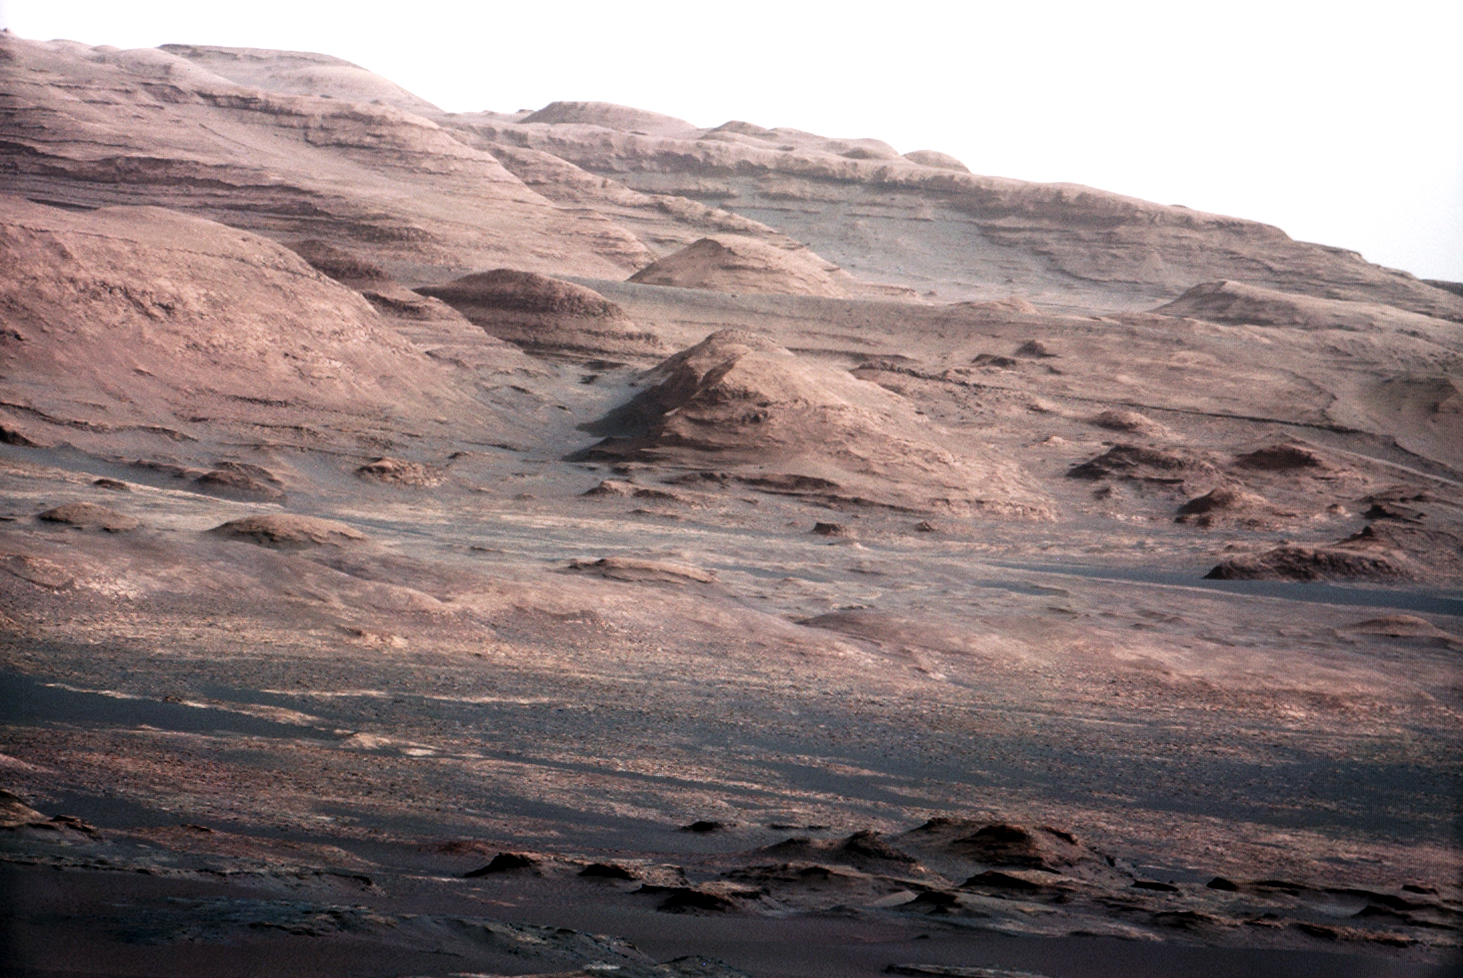 A chapter of the layered geological history of Mars is laid bare in this postcard from NASA's Curiosity rover. The image shows the base of Mount Sharp, the rover's eventual science destination. This image is a portion of a larger image taken by Curiosity's 100-millimeter Mast Camera on Aug. 23, 2012.